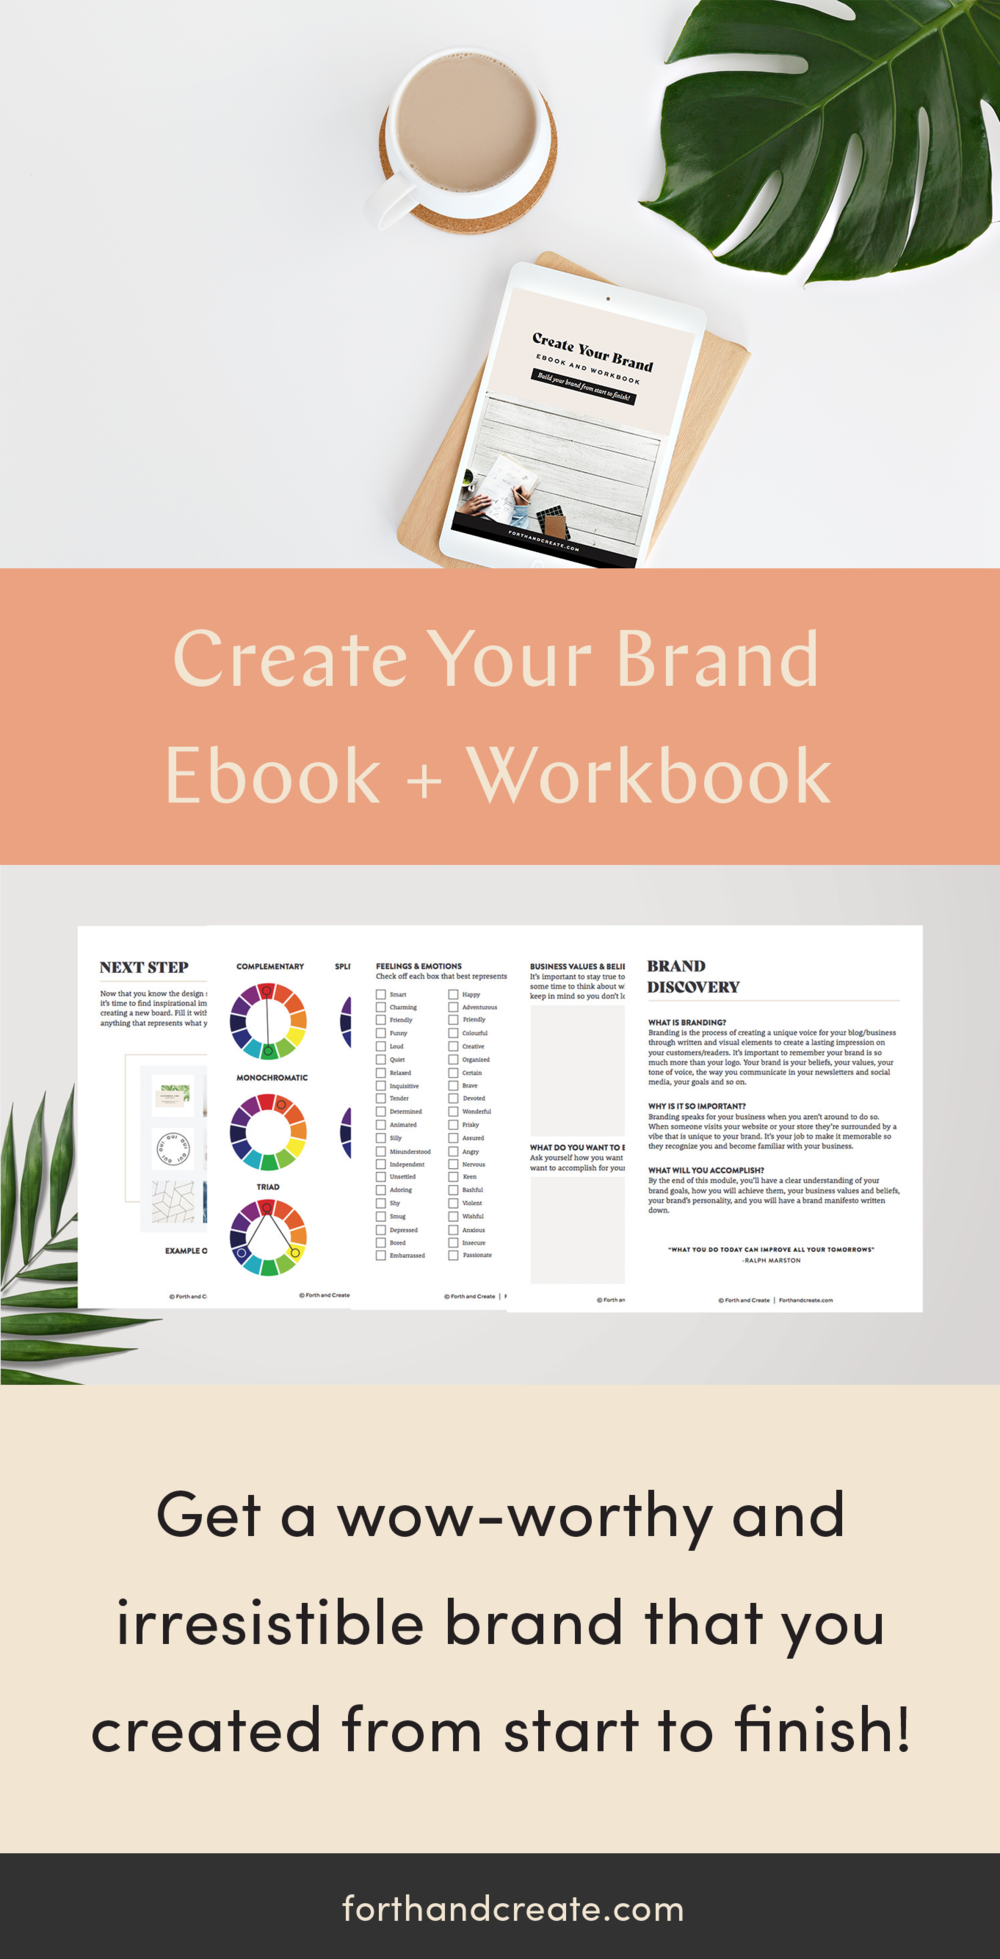 Create Your Brand Ebook and Workbook will help you get a wow-worthy and irresistible brand that you created from start to finish. Get brand and design help with my brand ebook. #brand #brandidentity #ebook #designebook #designworkbook #buildyourbrand